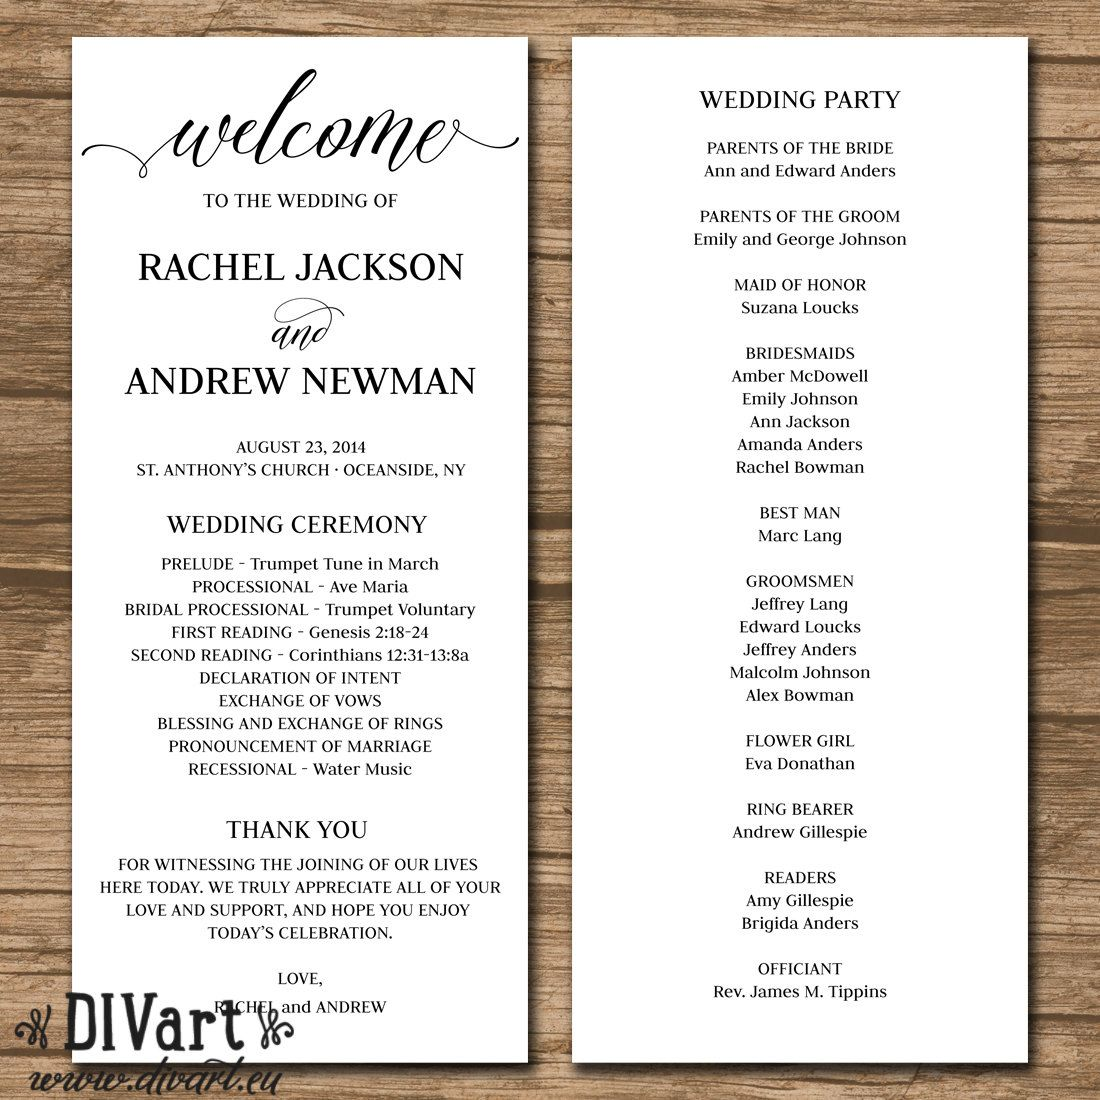 Rustic Wedding Program Wedding Ceremony Order Of Events Template